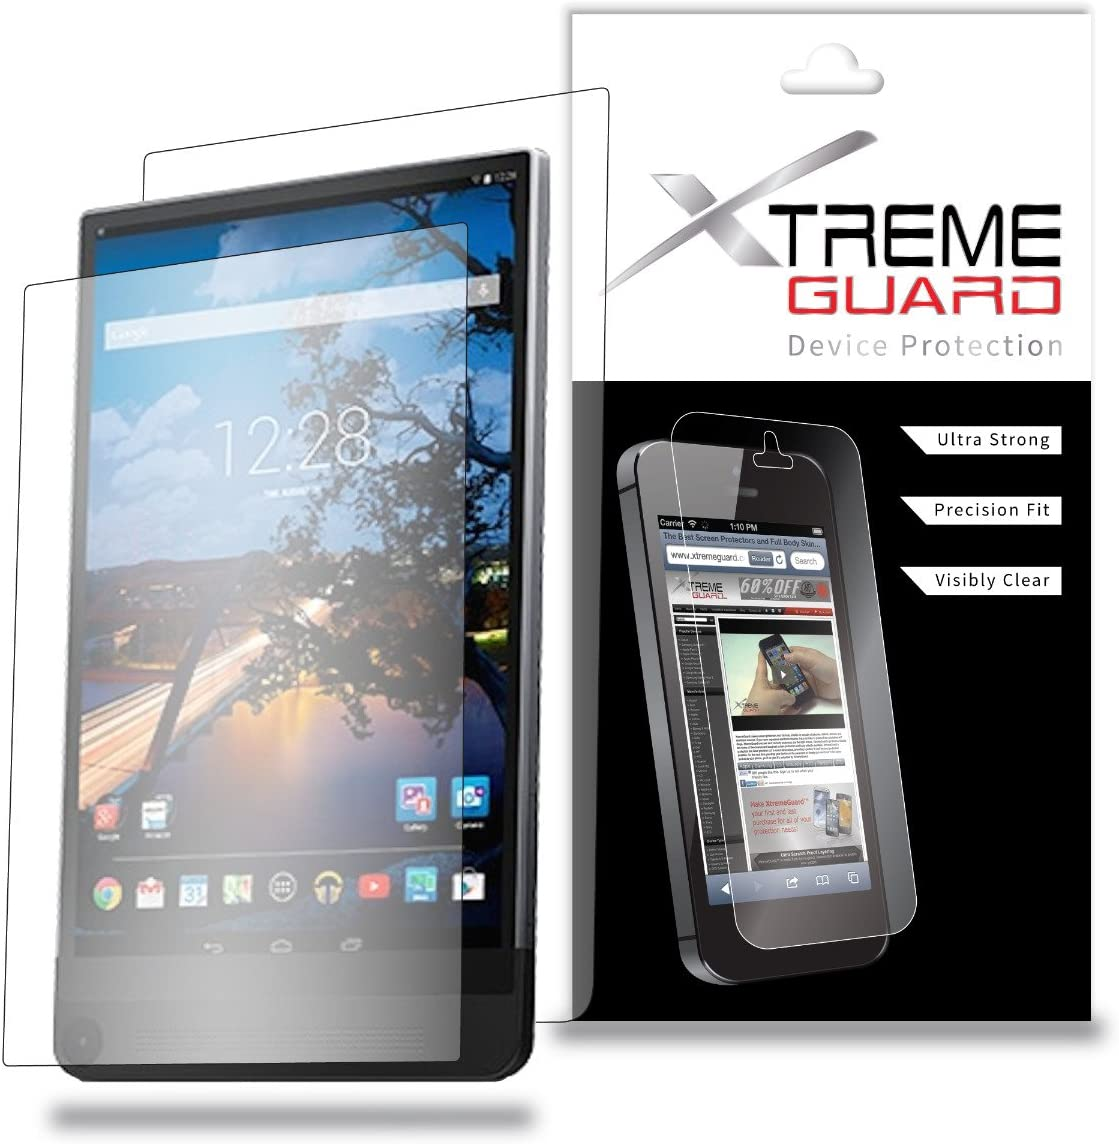 XtremeGuard Full Body Screen Protector for Dell Venue 8 7000 Tablet (Ultra Clear)